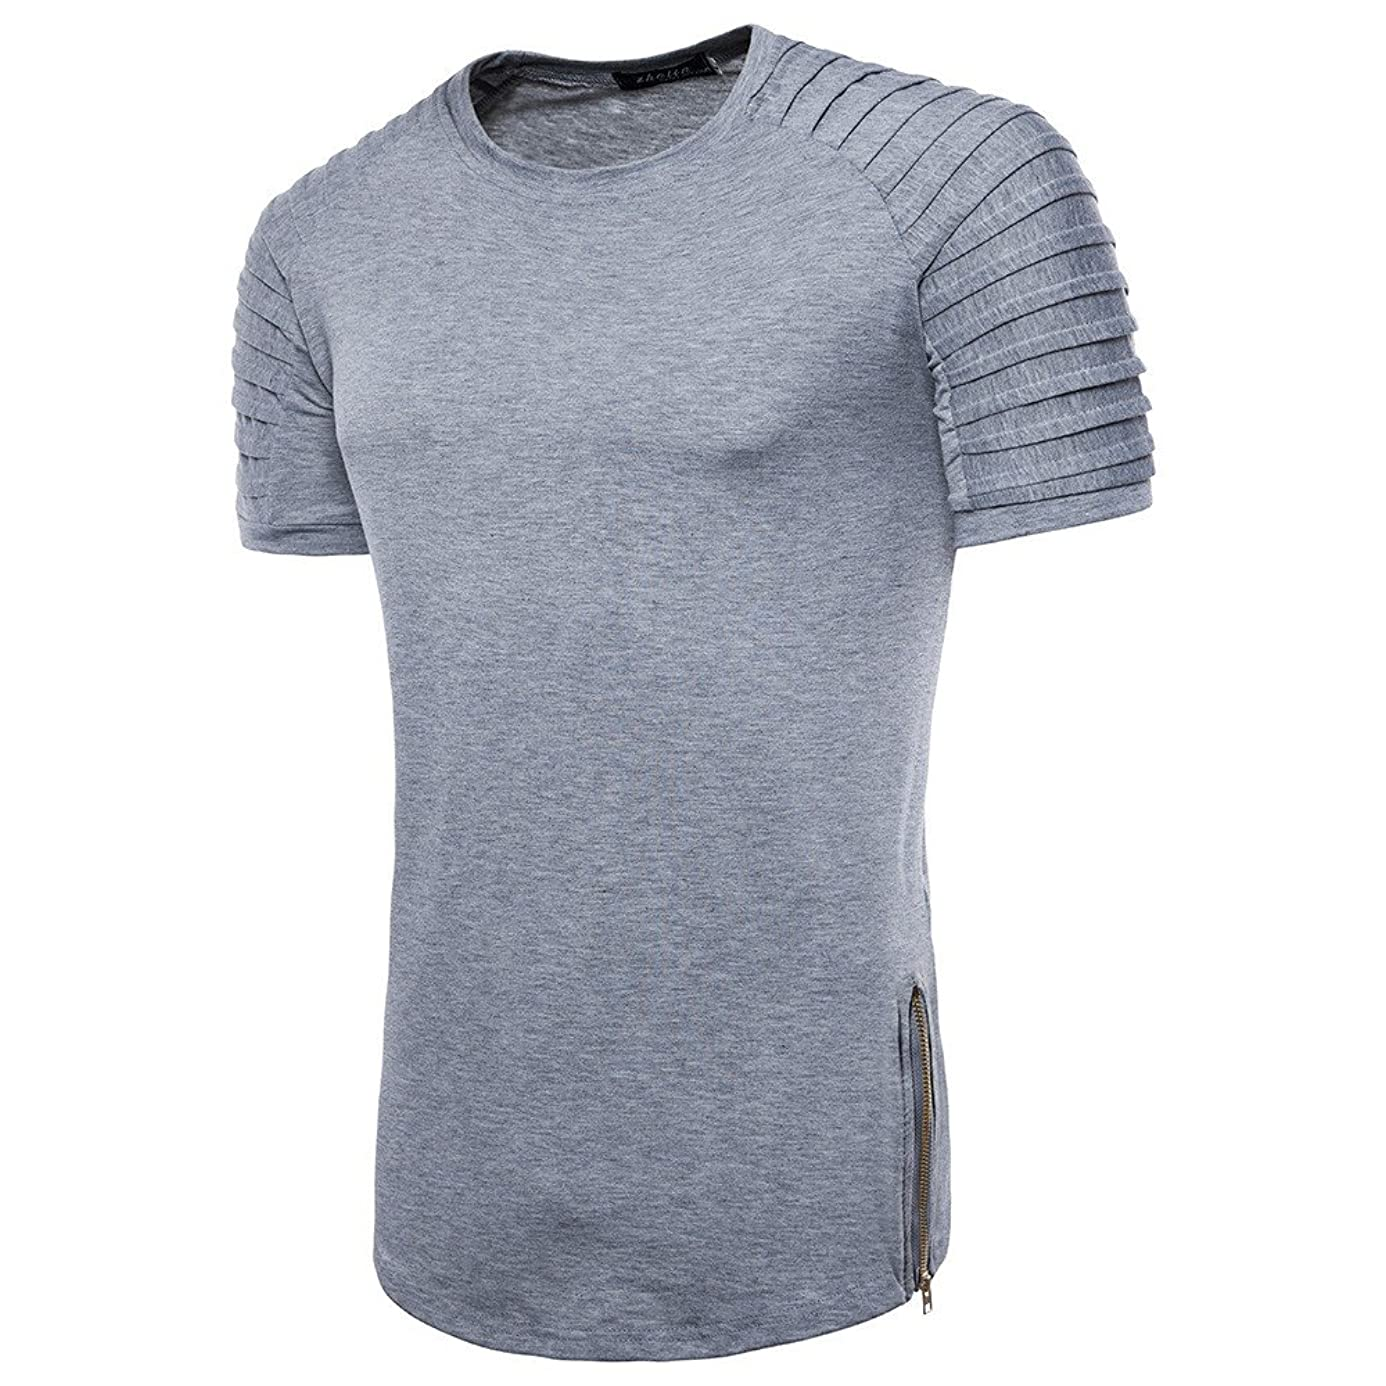 MILIMIEYIK Blouse Fashion Personality Men's Casual Slim Short Sleeve Striped T Shirt Top Blouse Humorous Gym Mexican Food